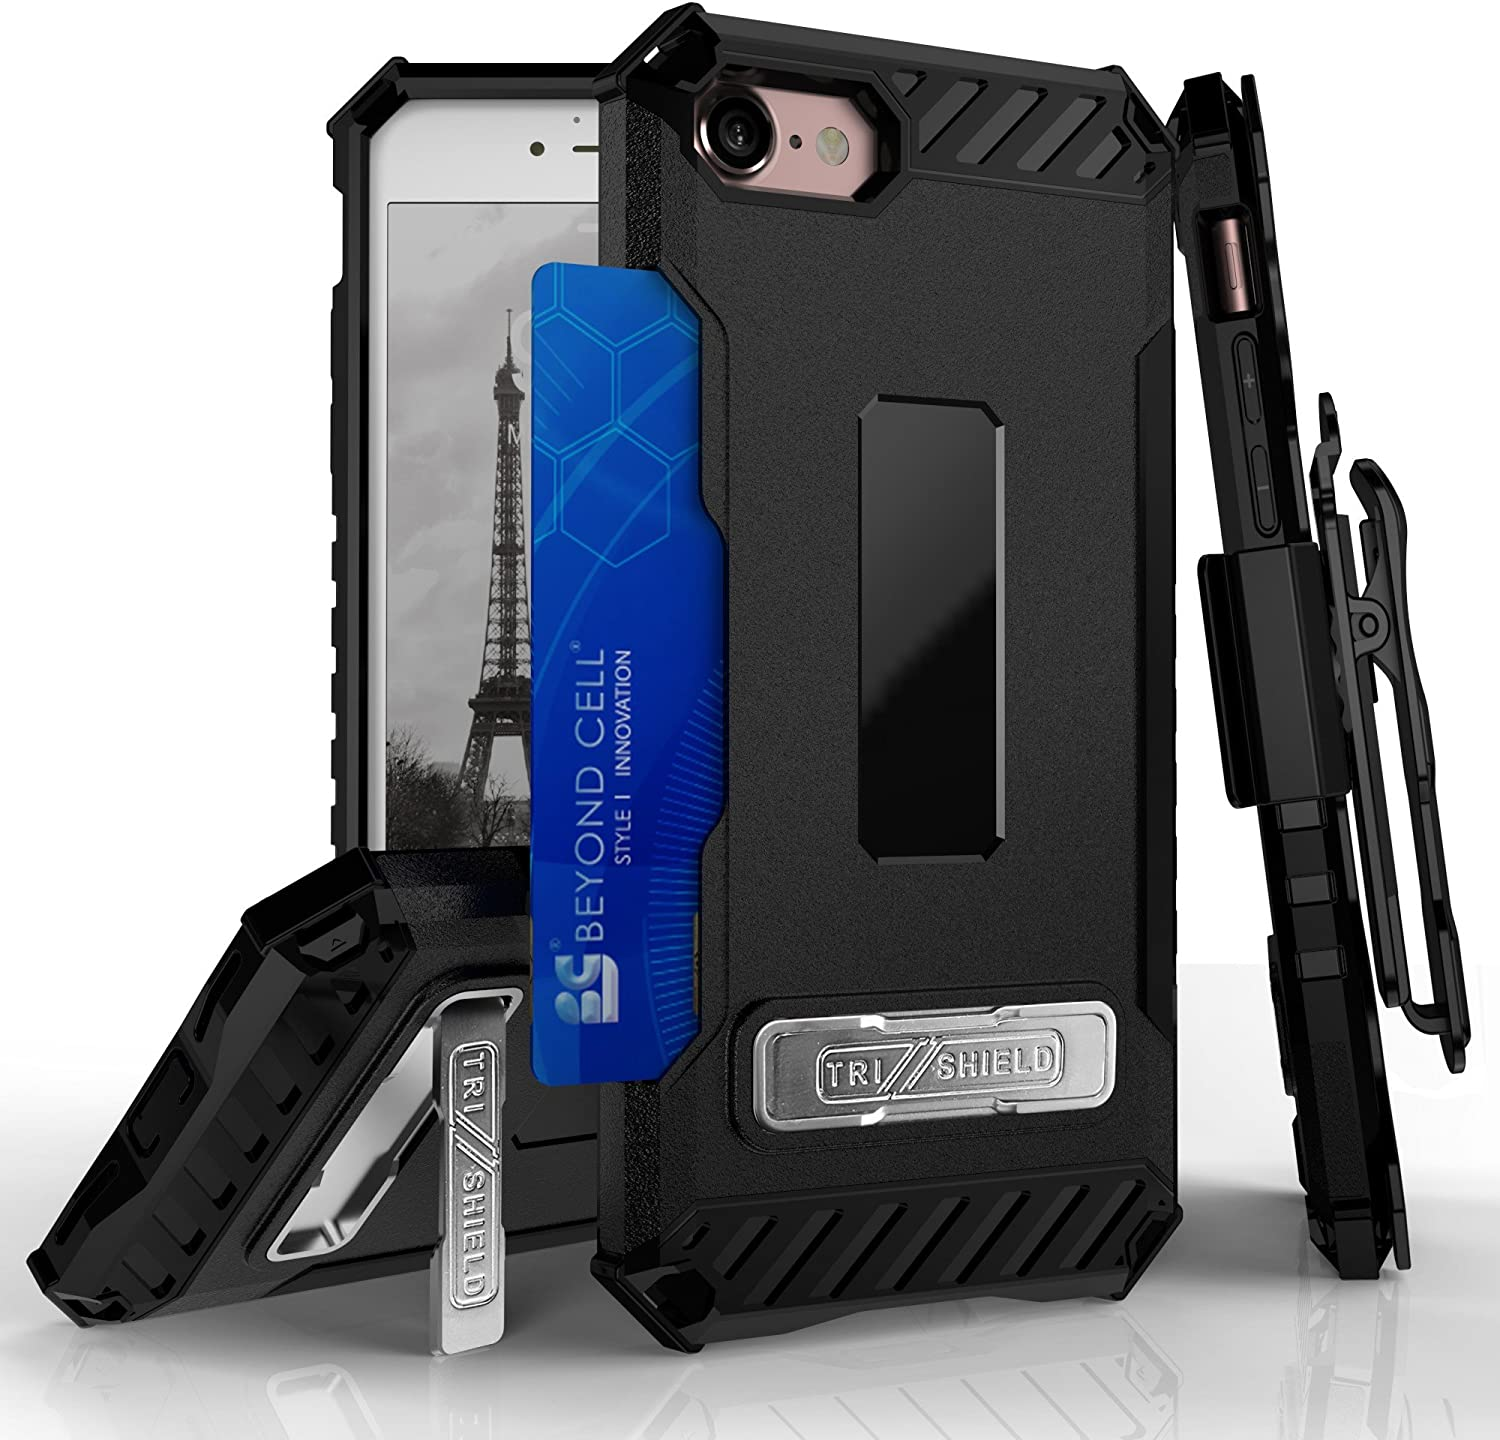 BEYOND CELL Tri-Shield Phone Case Compatible with iPhone 7 Case/iPhone 8 Case/iPhone SE (2020) 4.7 inch, Durable Rugged Phone Cover with Detachable Belt Clip Holster and Built in Kickstand